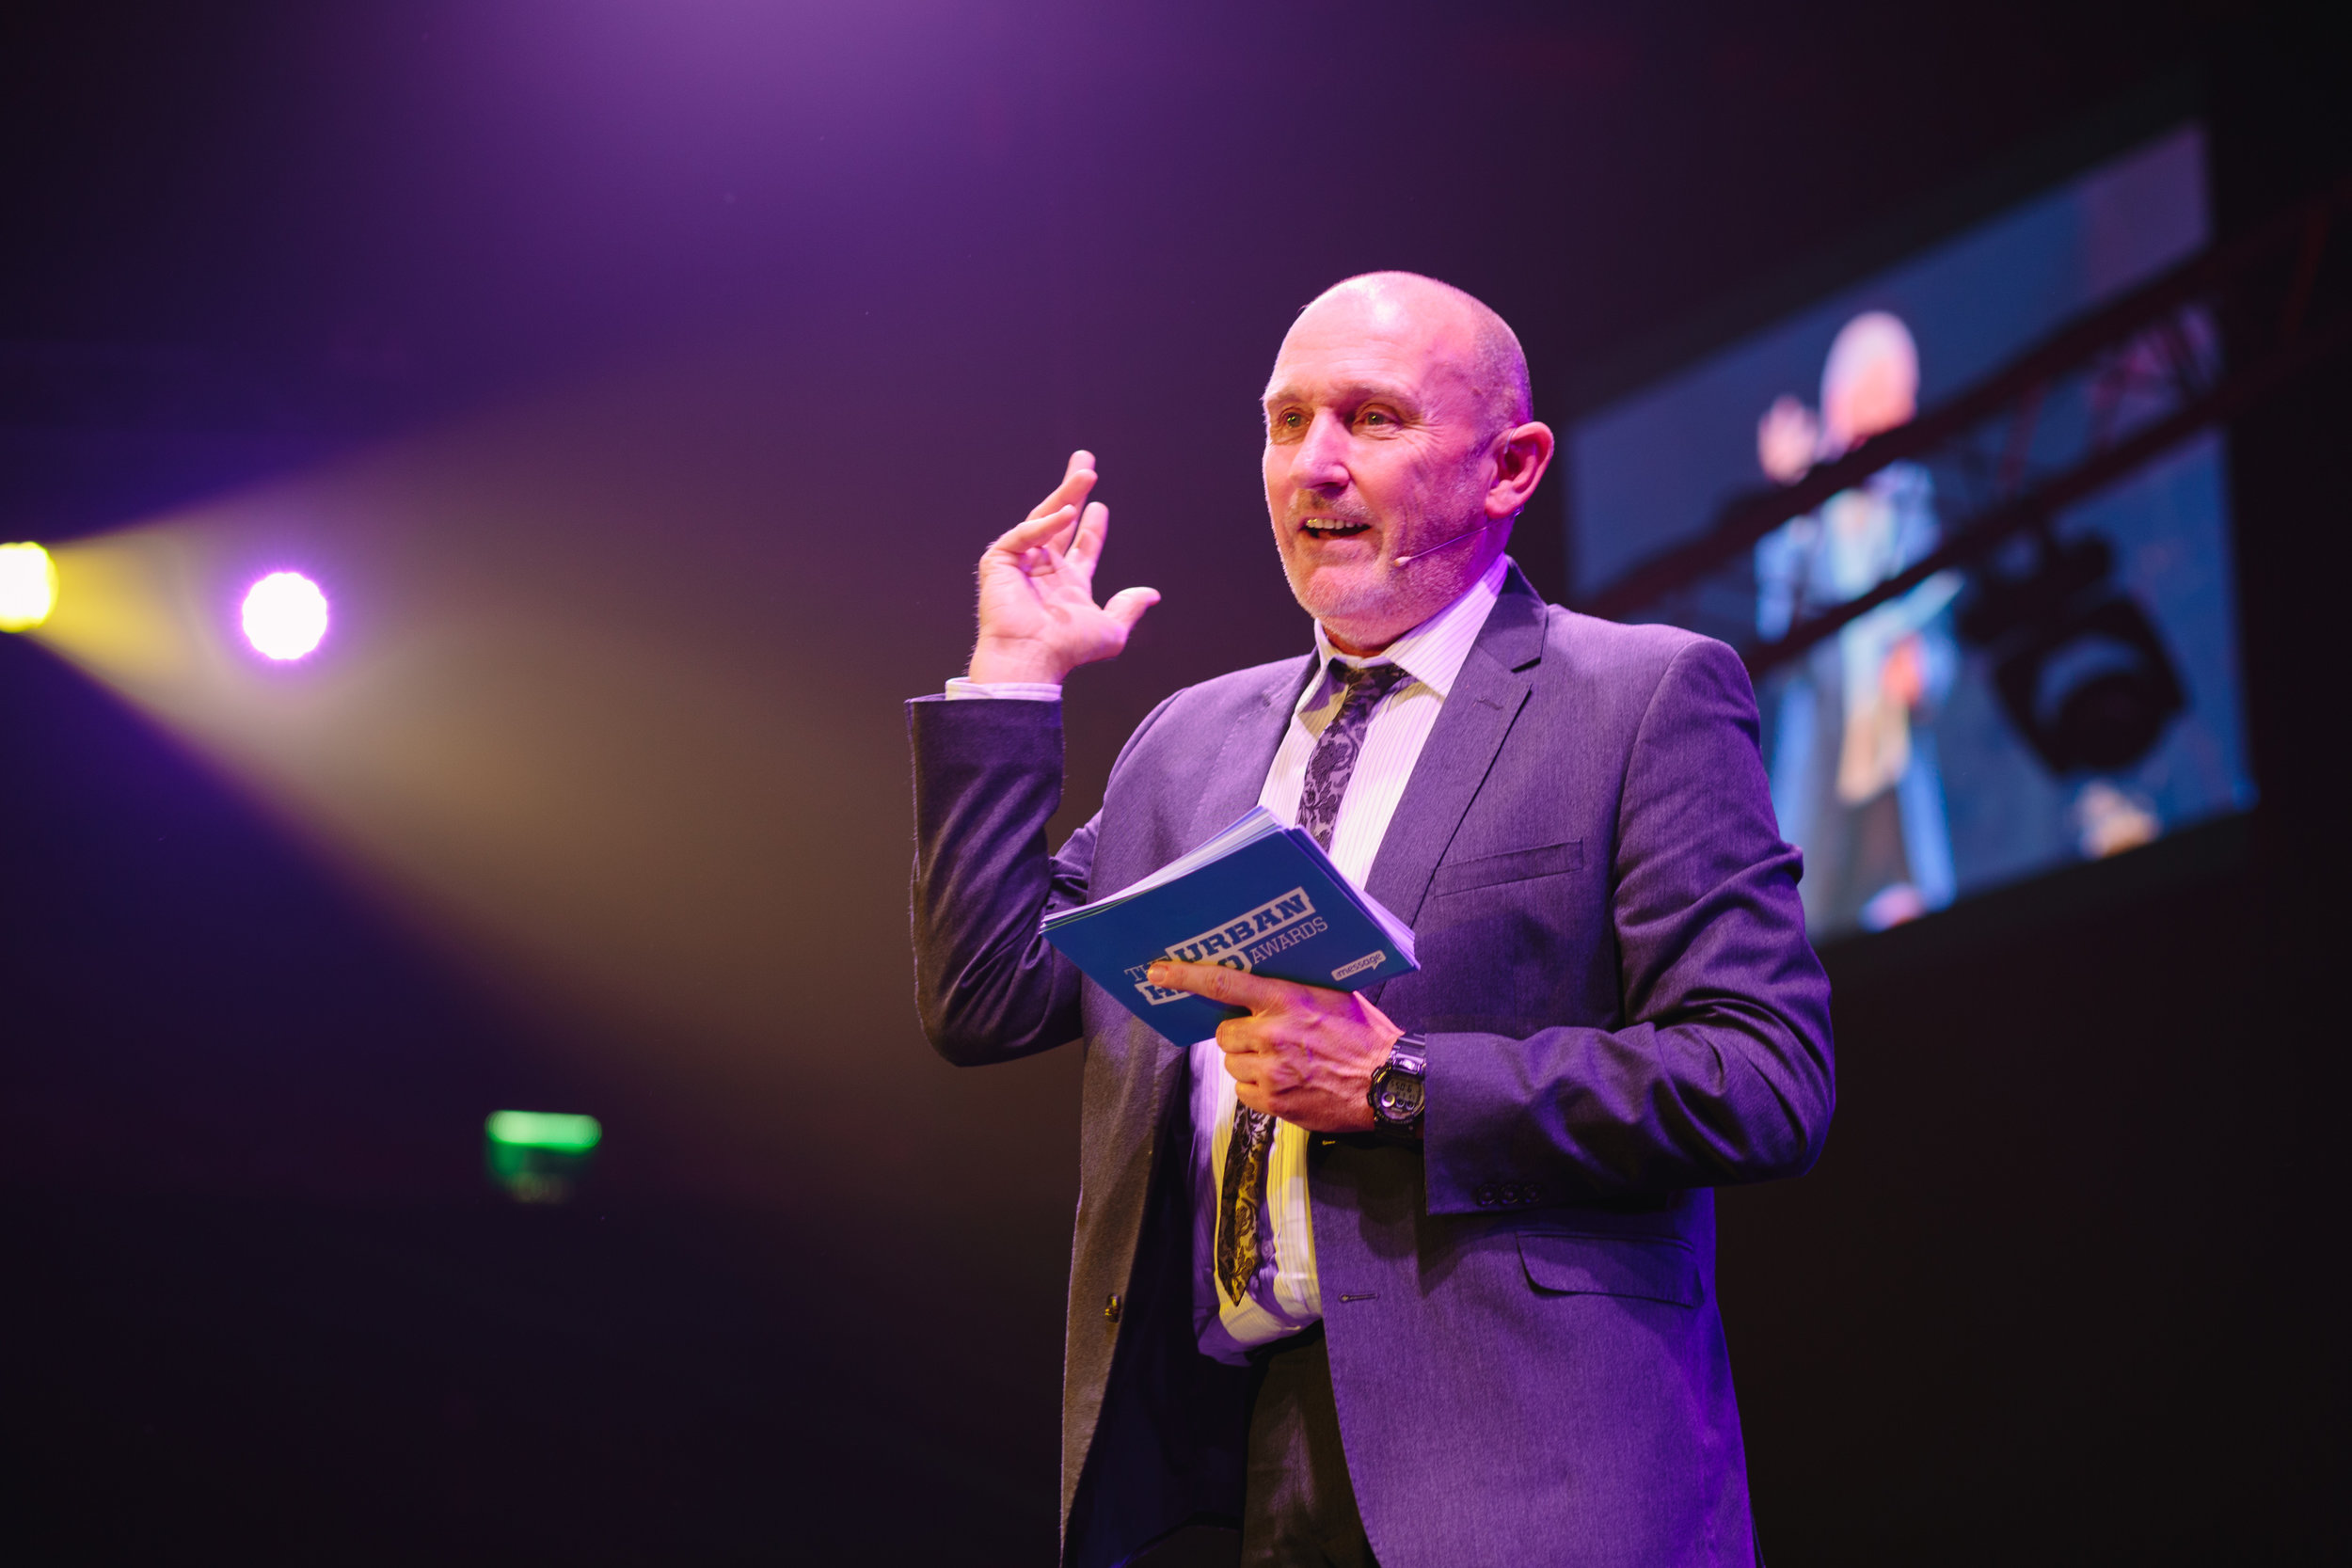 Andy Hawthorne OBE - Founder and CEO of The Message Trust UKI've worked closely with Tim over the last few years and recognise him as an outstanding leader from whom we have much to learn. This dynamic and powerful material is essential reading for any leader who wants to go the distance.